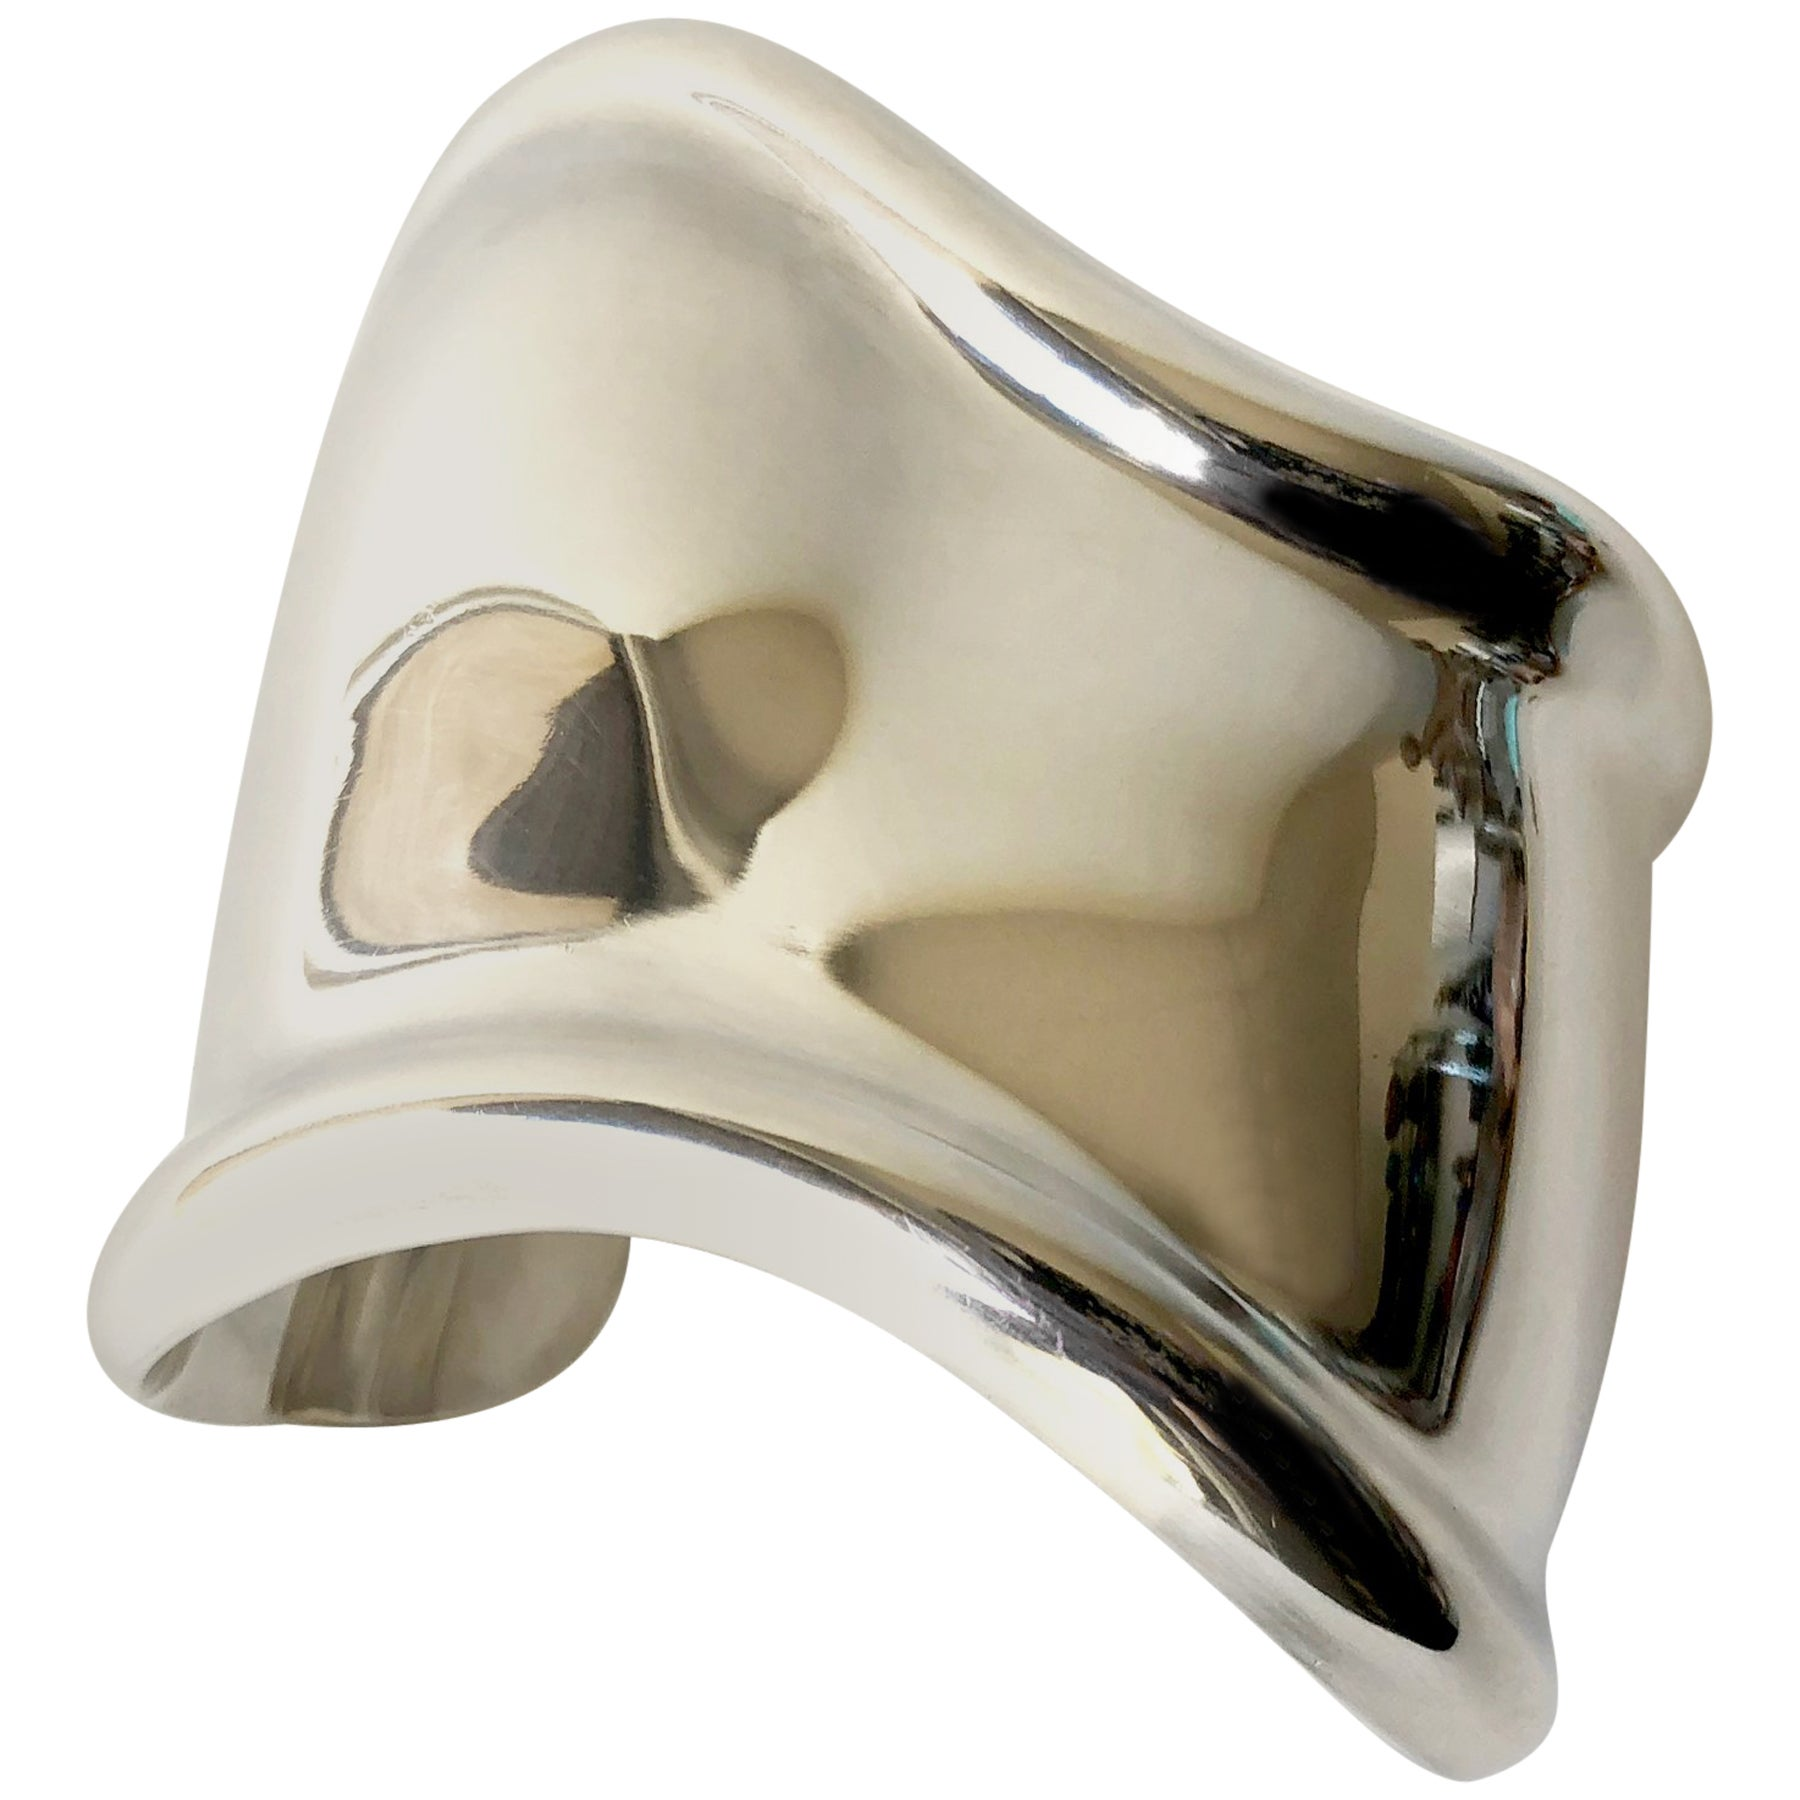 1ad5bad87 Vintage Elsa Peretti for Tiffany and Co. Sterling Silver Bone Cuff Bracelet  at 1stdibs